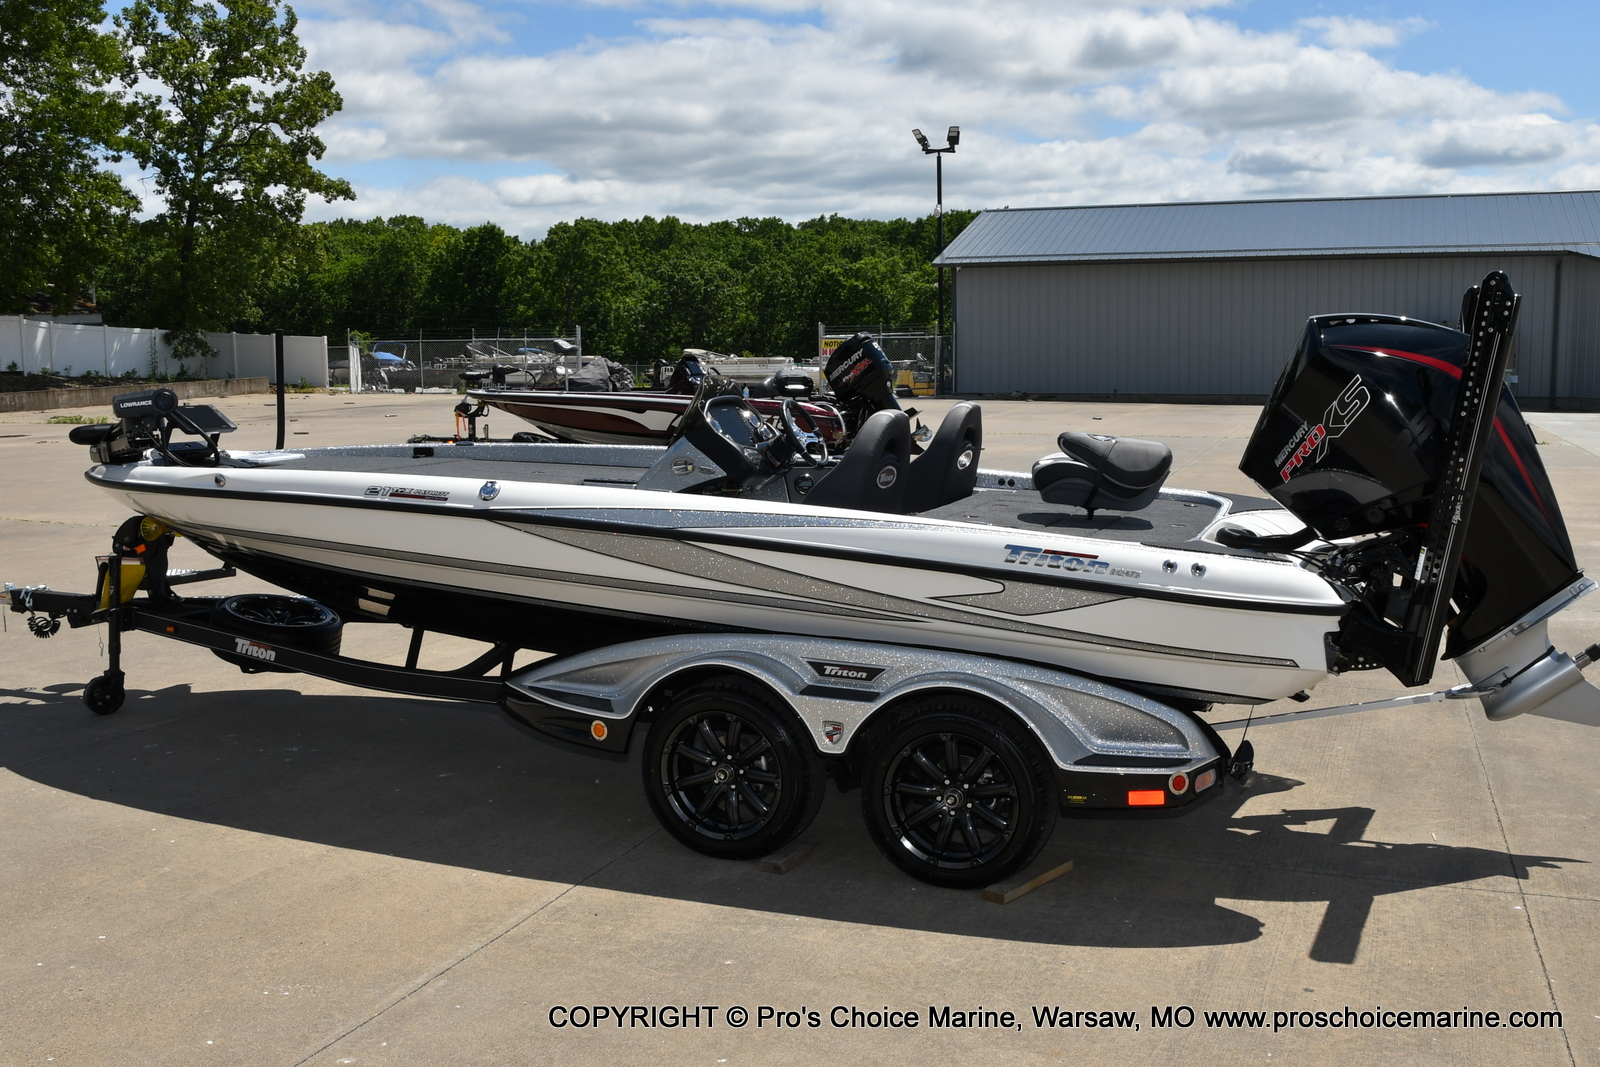 2021 Triton boat for sale, model of the boat is 21 TRX Patriot & Image # 16 of 50